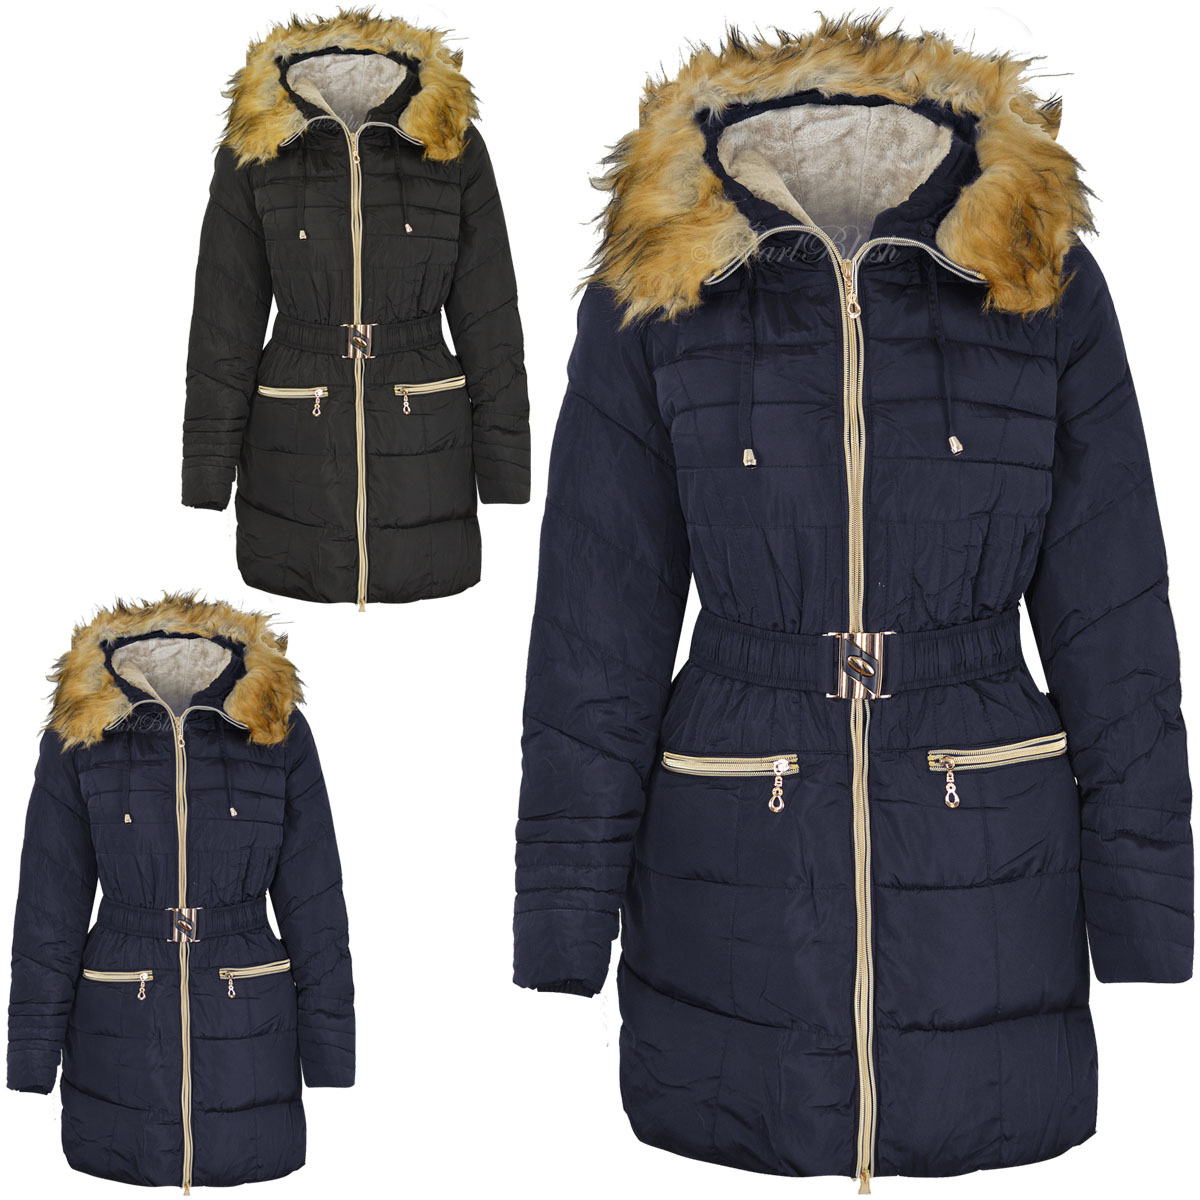 Womens hooded winter coat